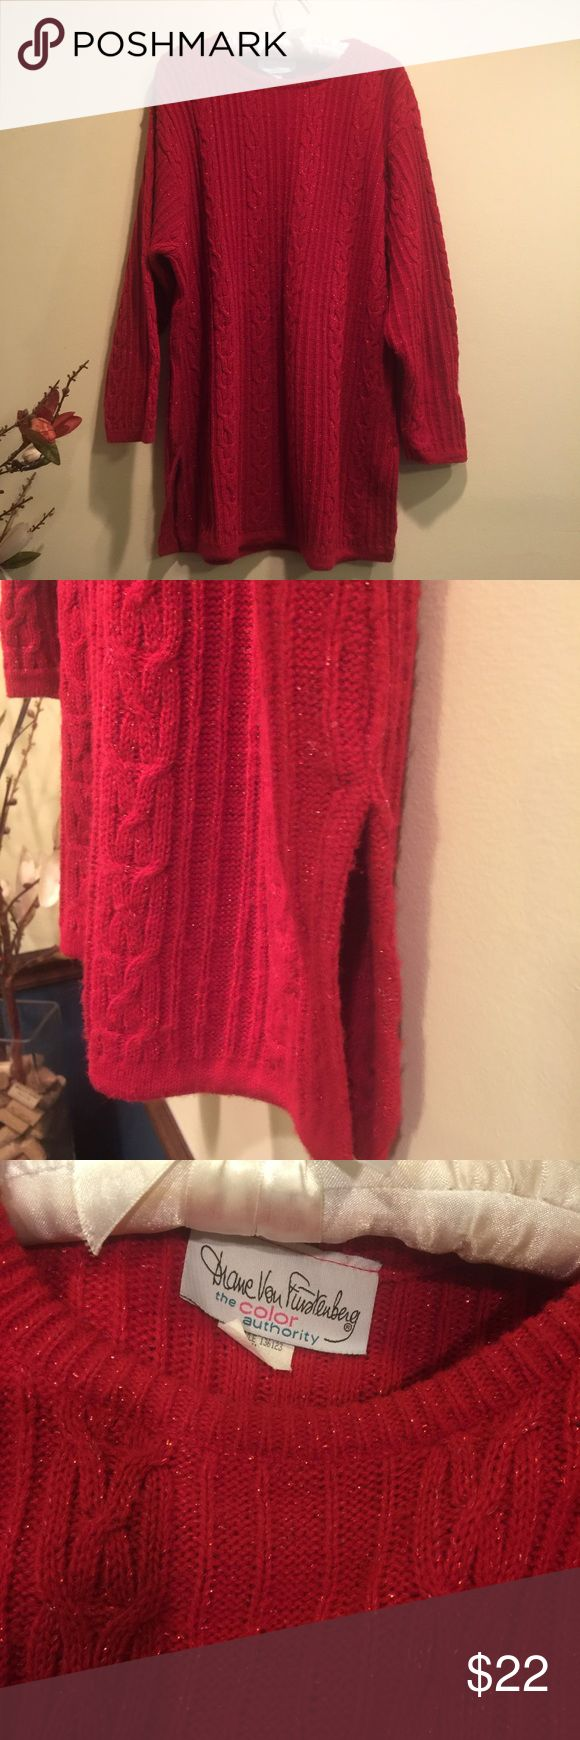 Diane von Furstenberg red sparkly sweater Size m/l. Lovely red sparkly sweater perfect for the holidays. This would be so cute with leggings and boots!  Great condition. Diane Von Furstenberg Sweaters Crew & Scoop Necks